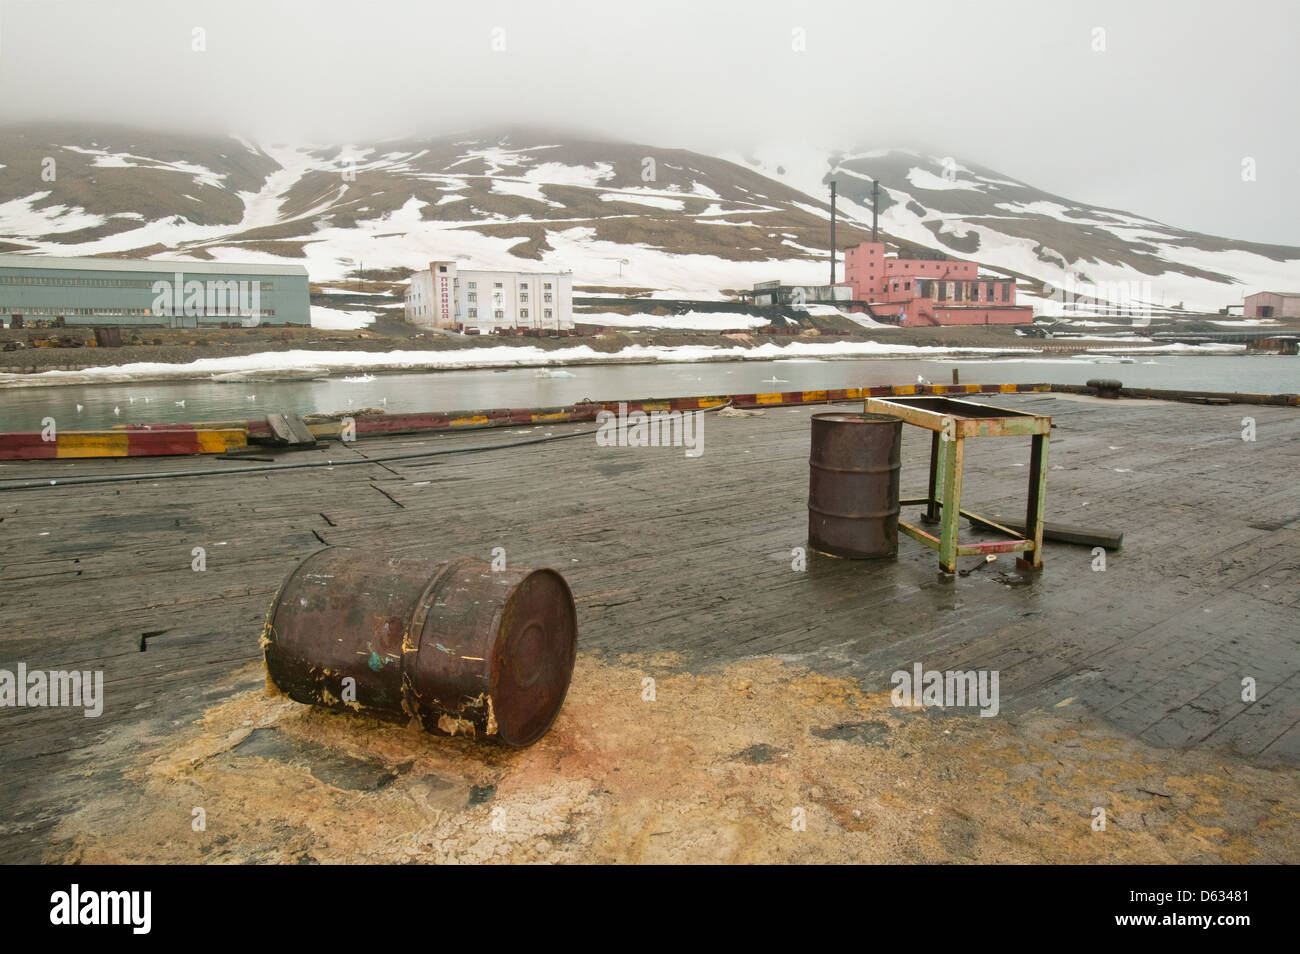 The harbor at the abandoned Russian society Pyramiden, at Spitsbergen, Svalbard region, Norway. - Stock Image